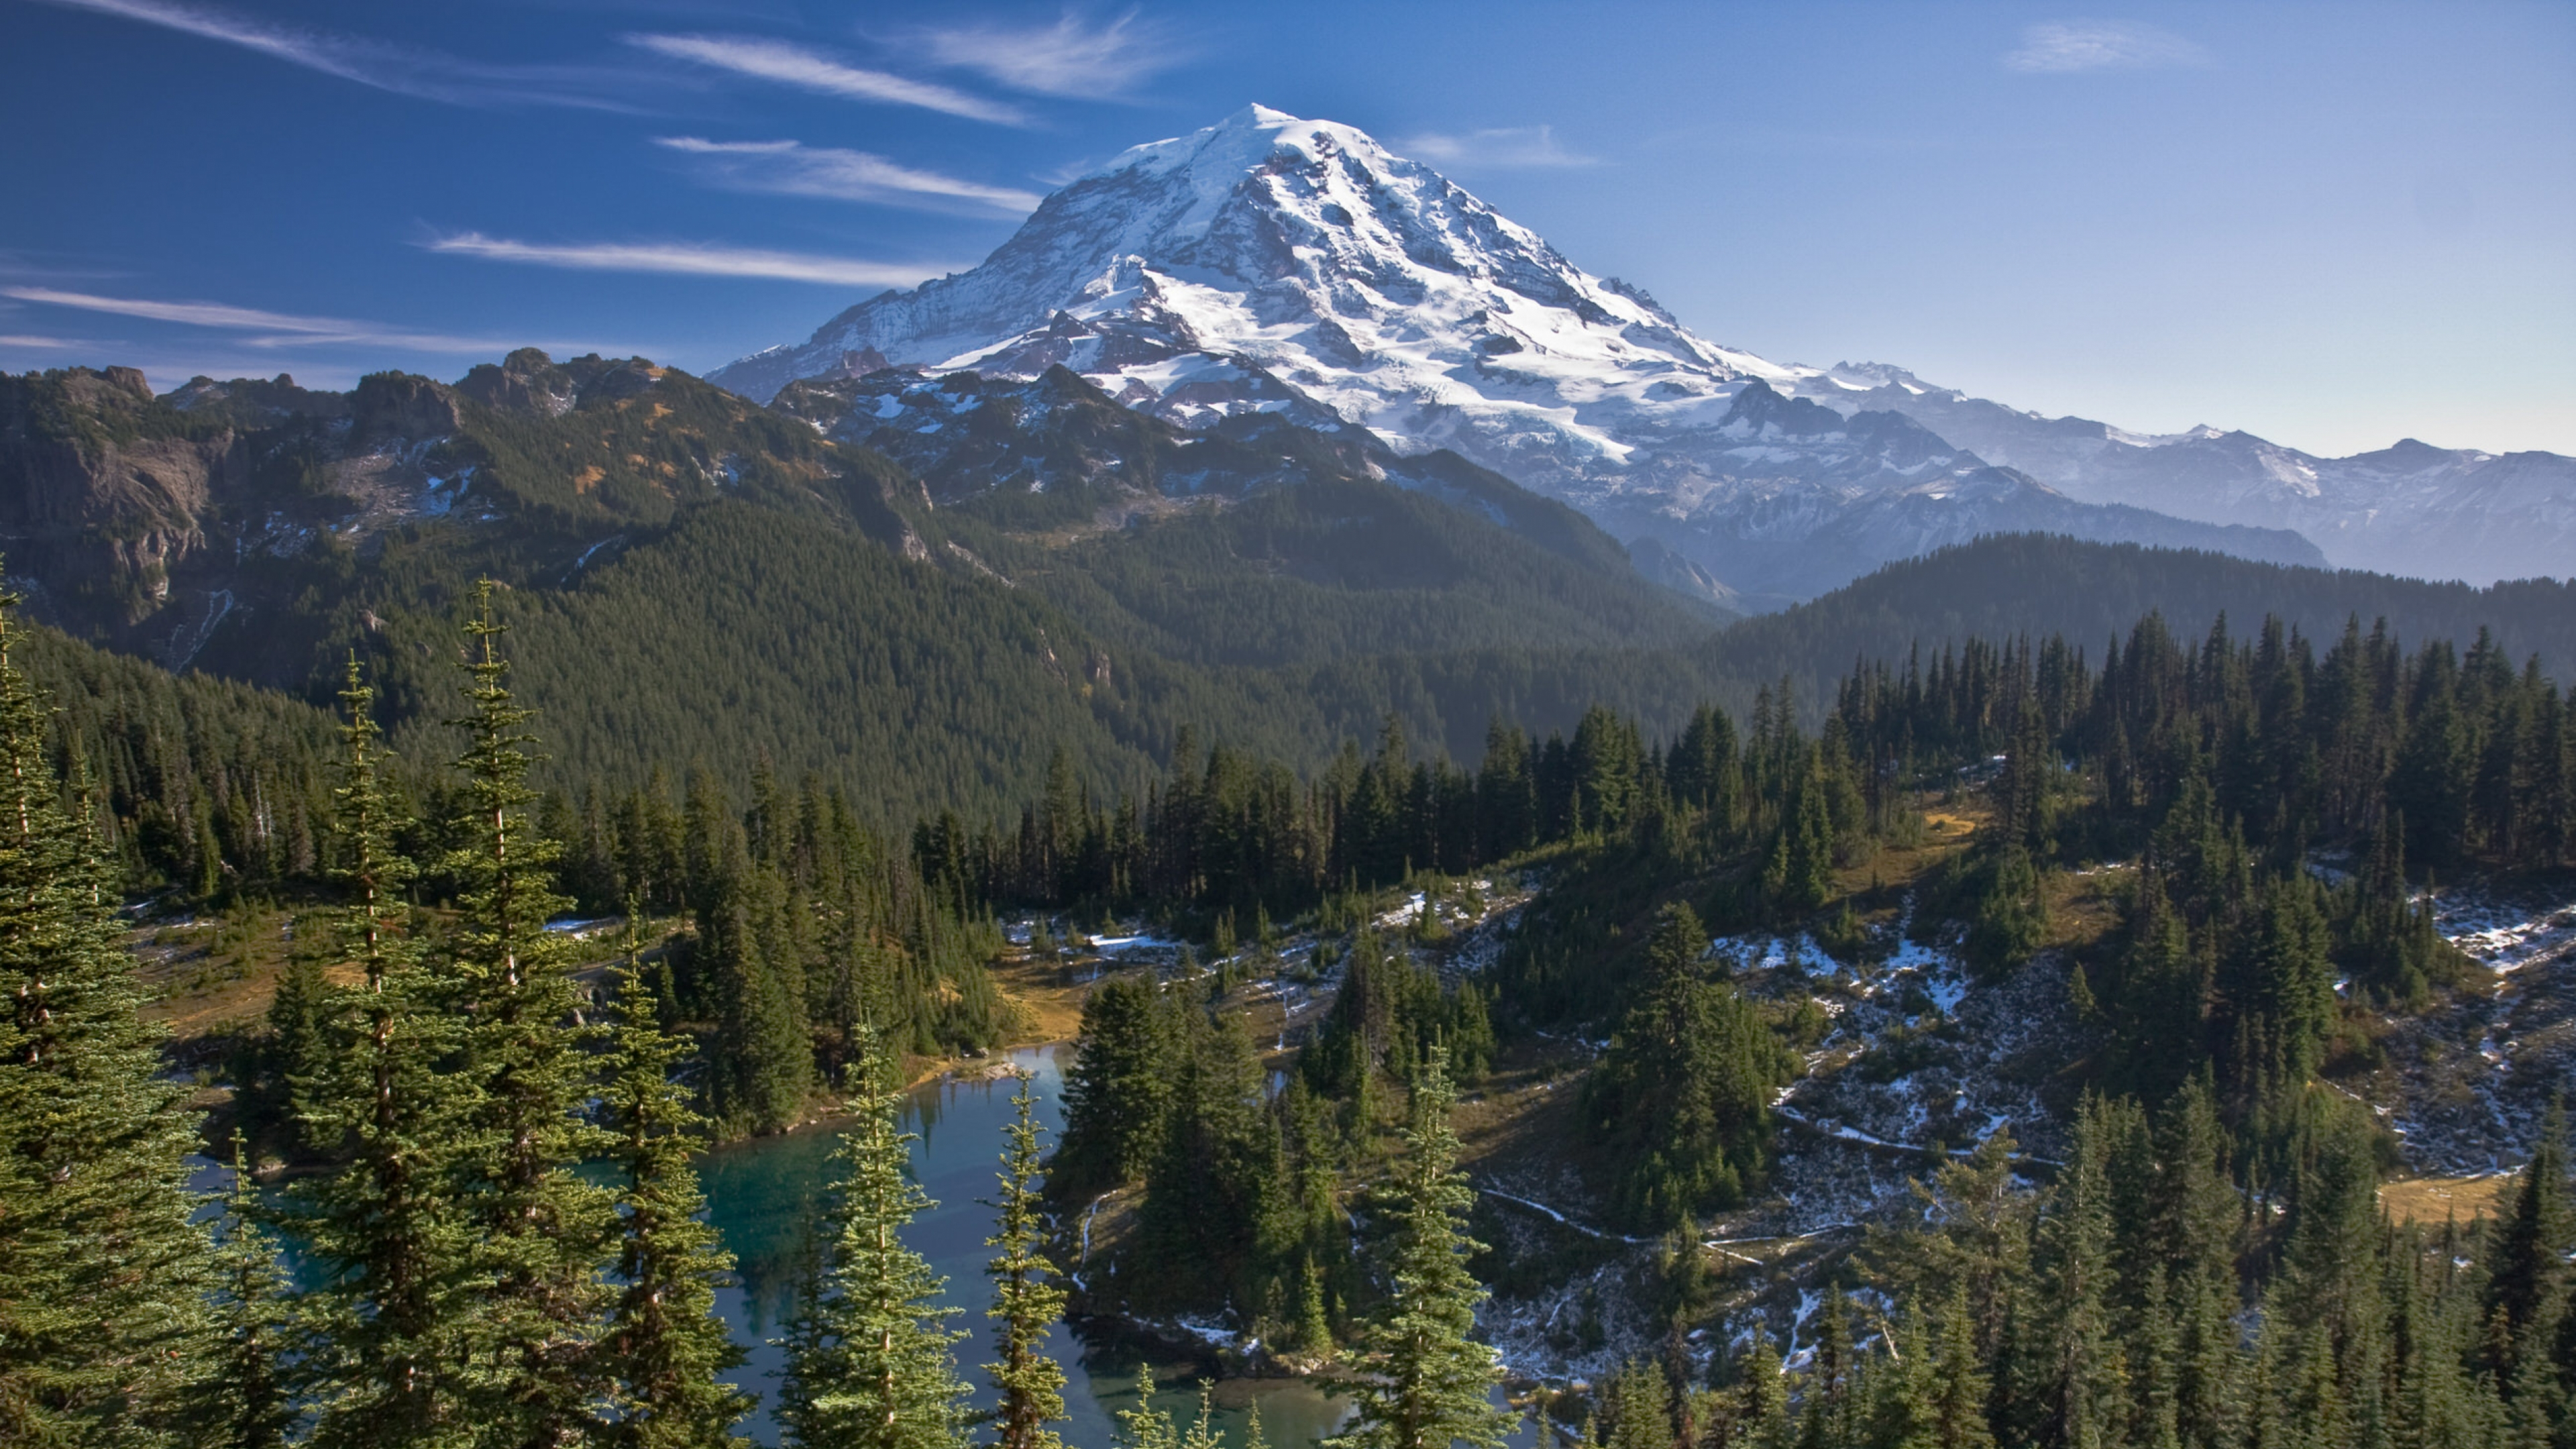 Snow-covered Mount Rainier behind evergreens and a river